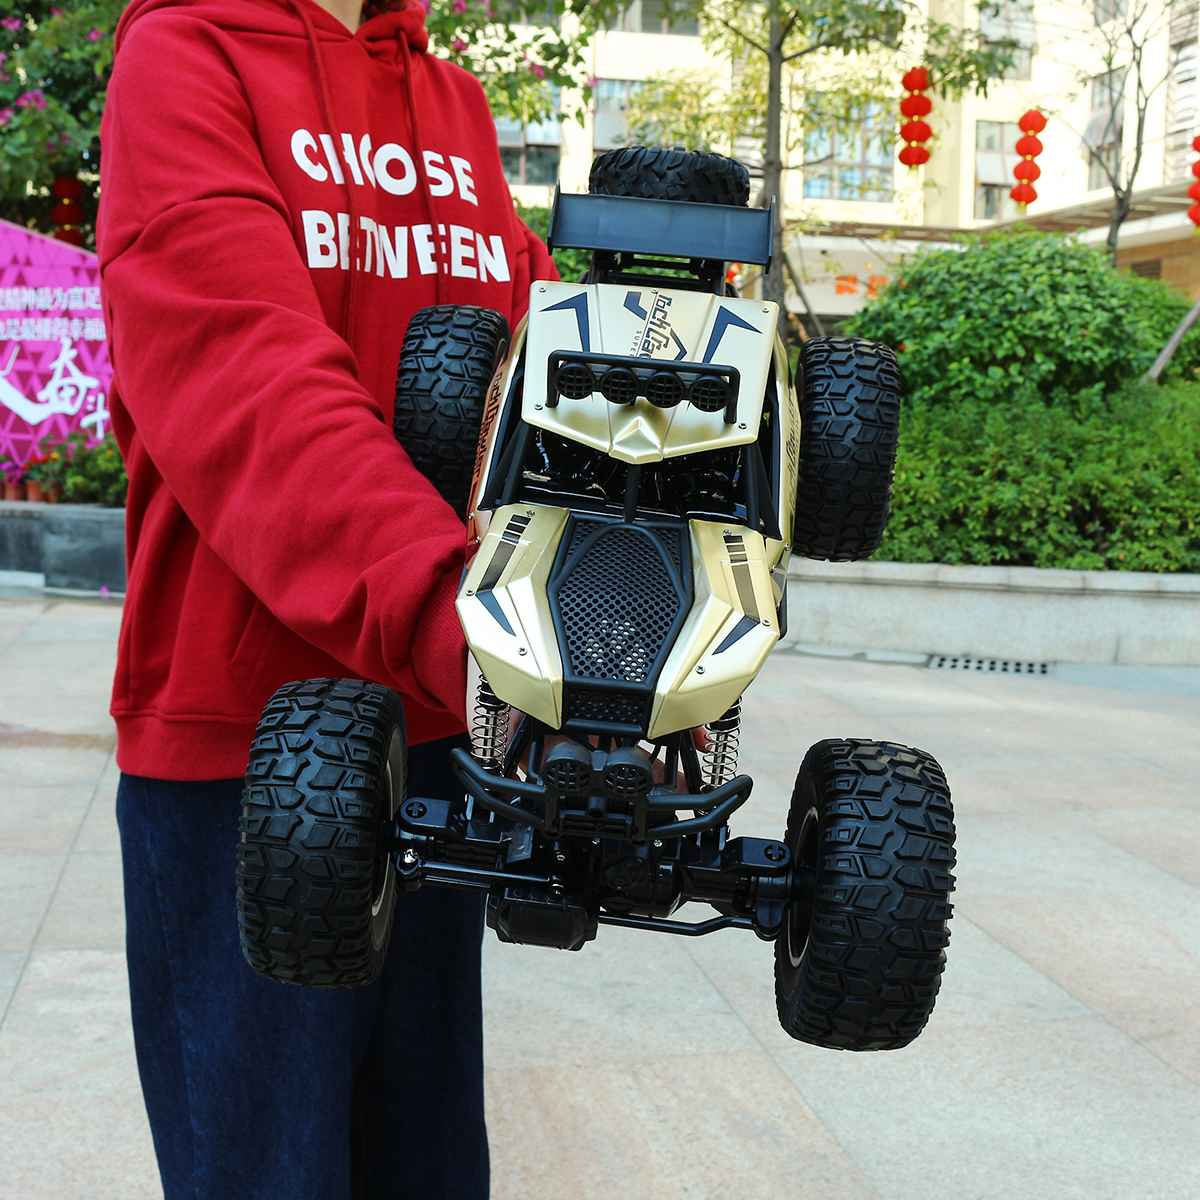 1:8 50cm RC Car 4WD 2.4G Radio Controlled Machine Off-road Electric Vehicle Remote Control Car Toys For Boys Children